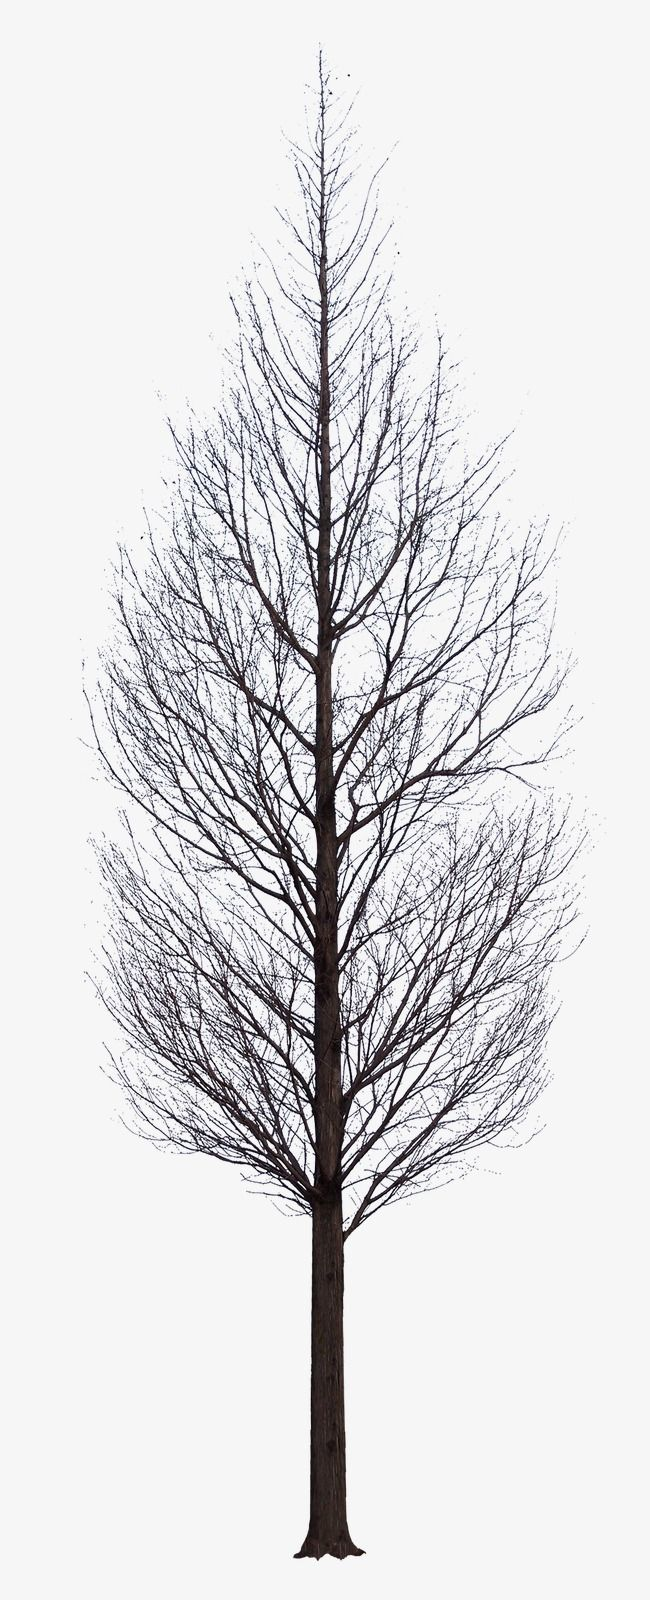 Dark Tree Tree Clipart Leaves Black Png Transparent Clipart Image And Psd File For Free Download Tree Photoshop Photoshop Landscape Dark Tree